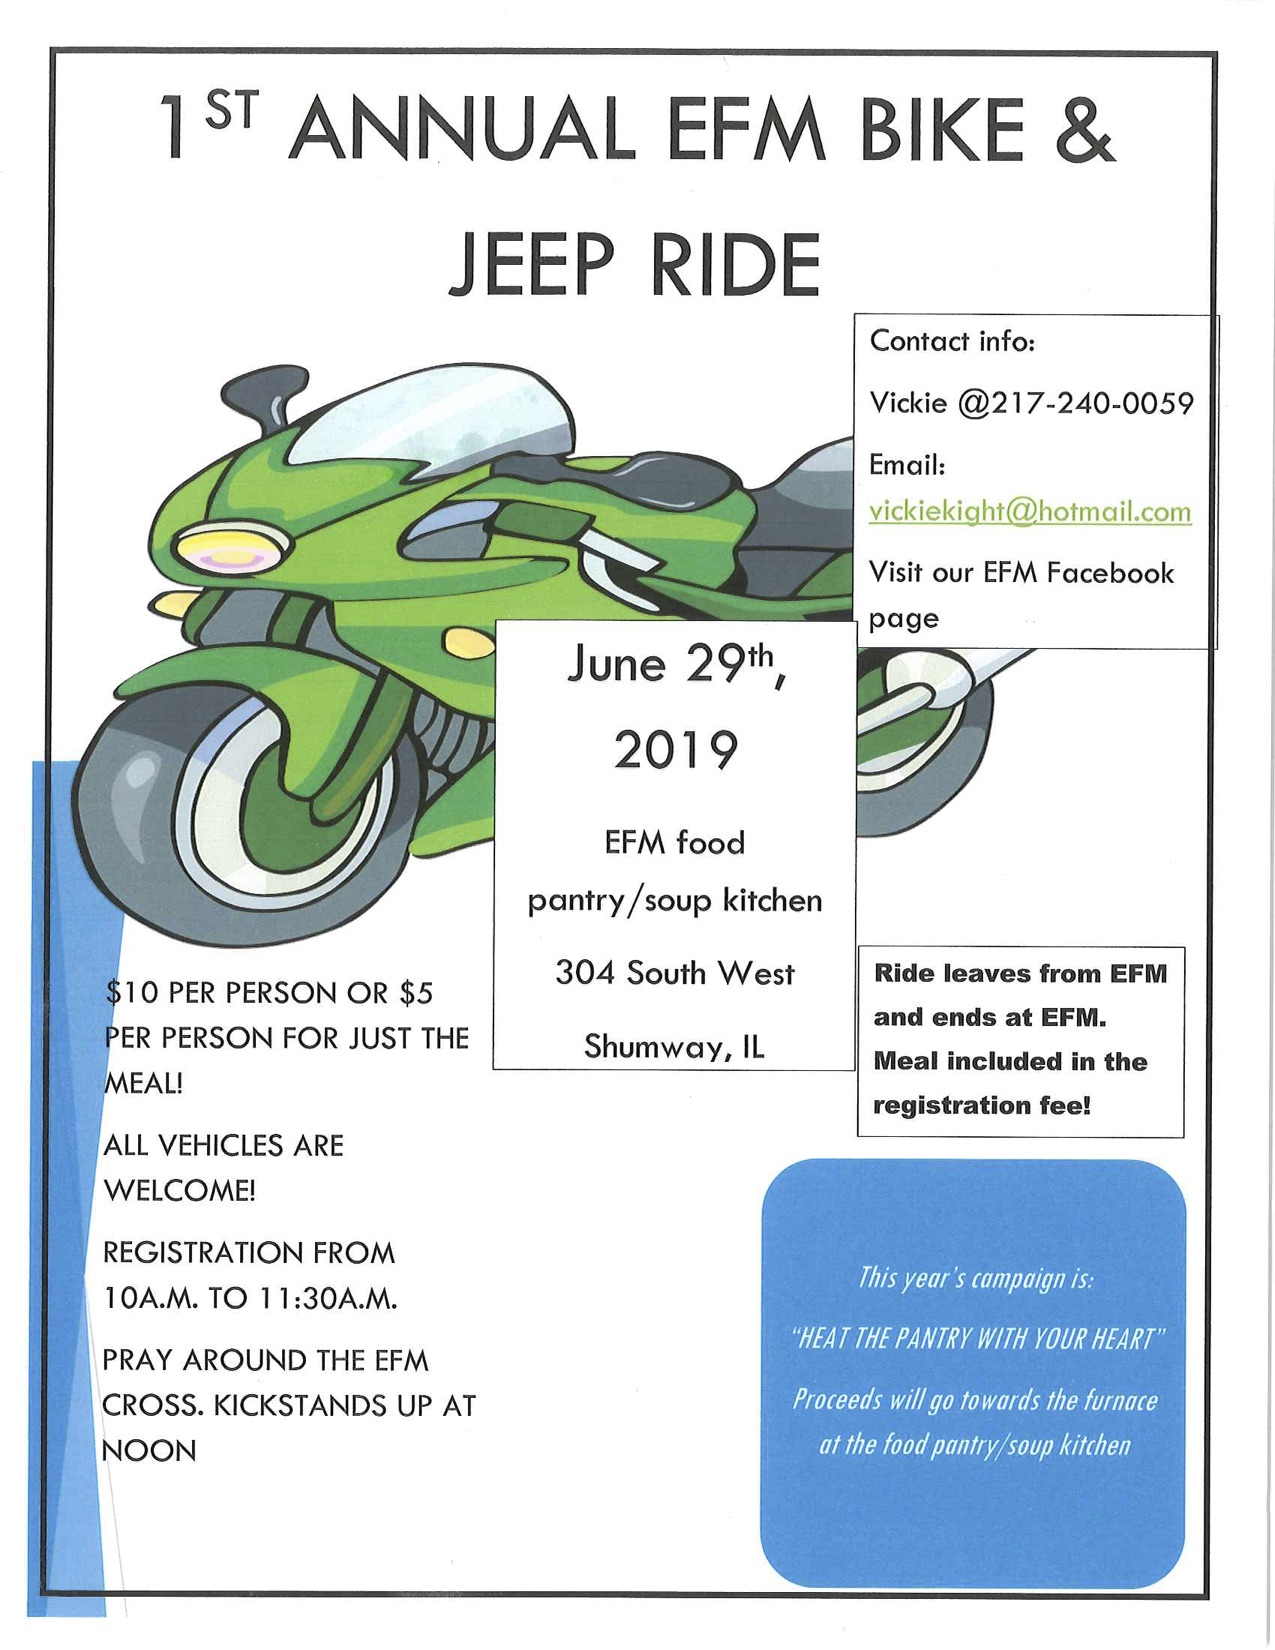 EFM Bike & Jeep Ride